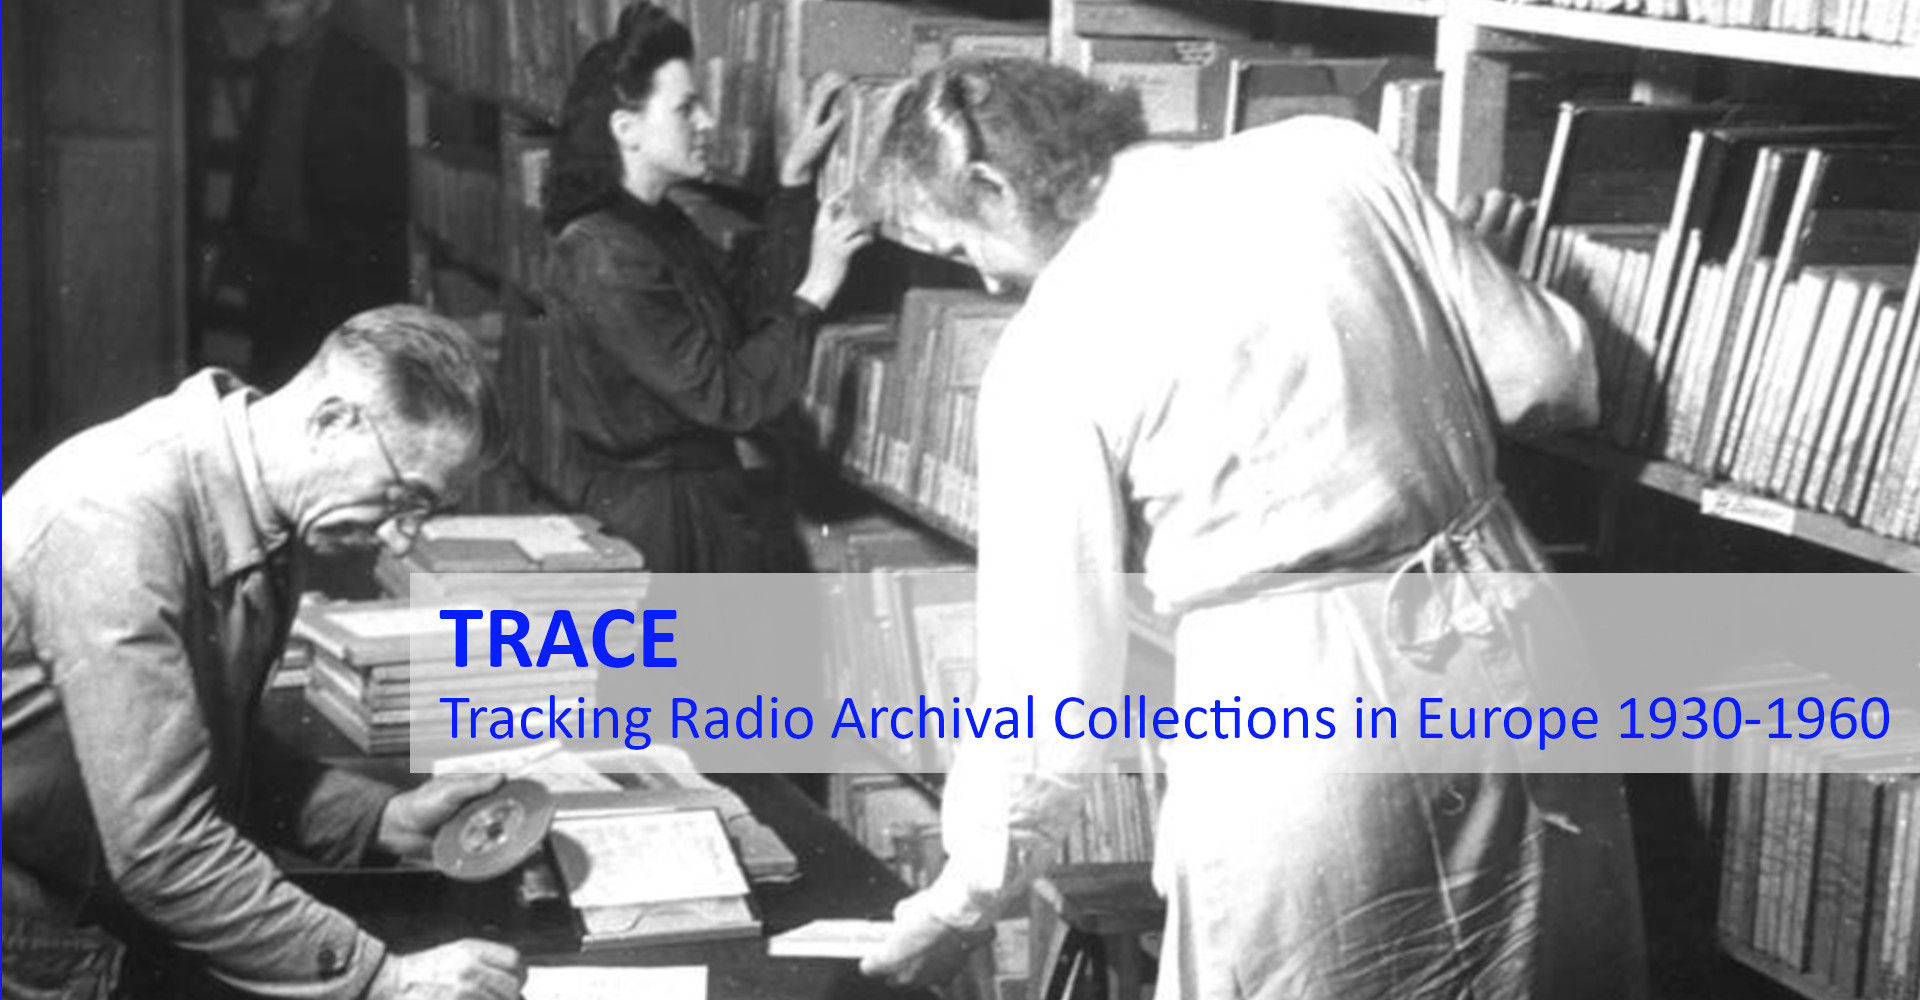 TRACE - Tracking Radio Archival Collections in Europe 1930-1960